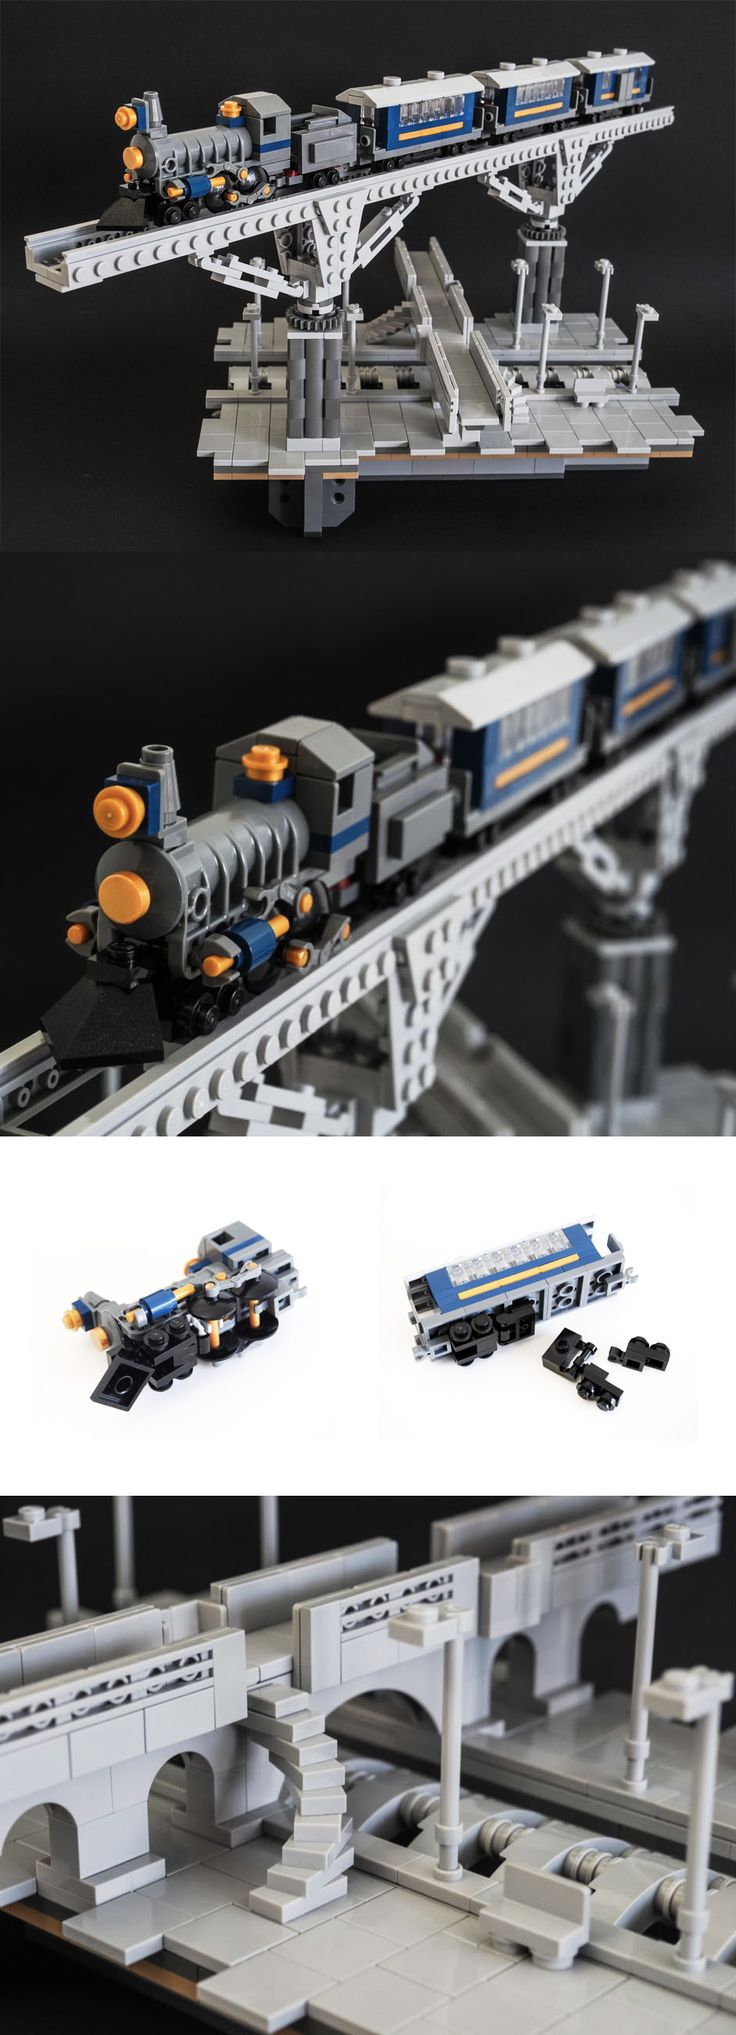 elevated train tracks LEGO vignette by 'Galaktek'